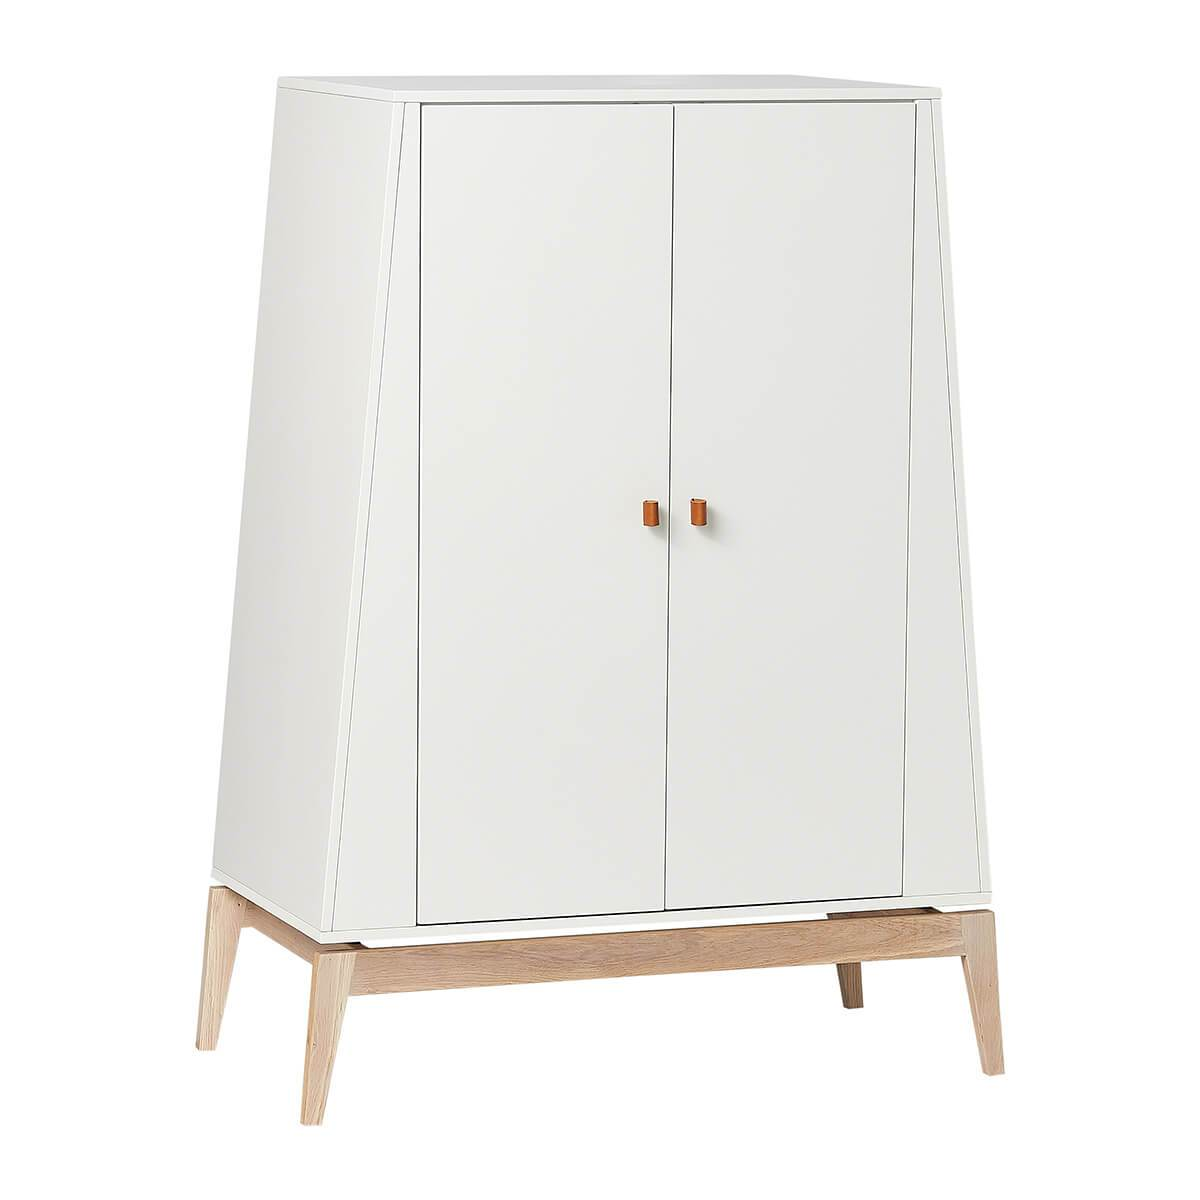 Leander Luna Wardrobe (small) - White/Oak